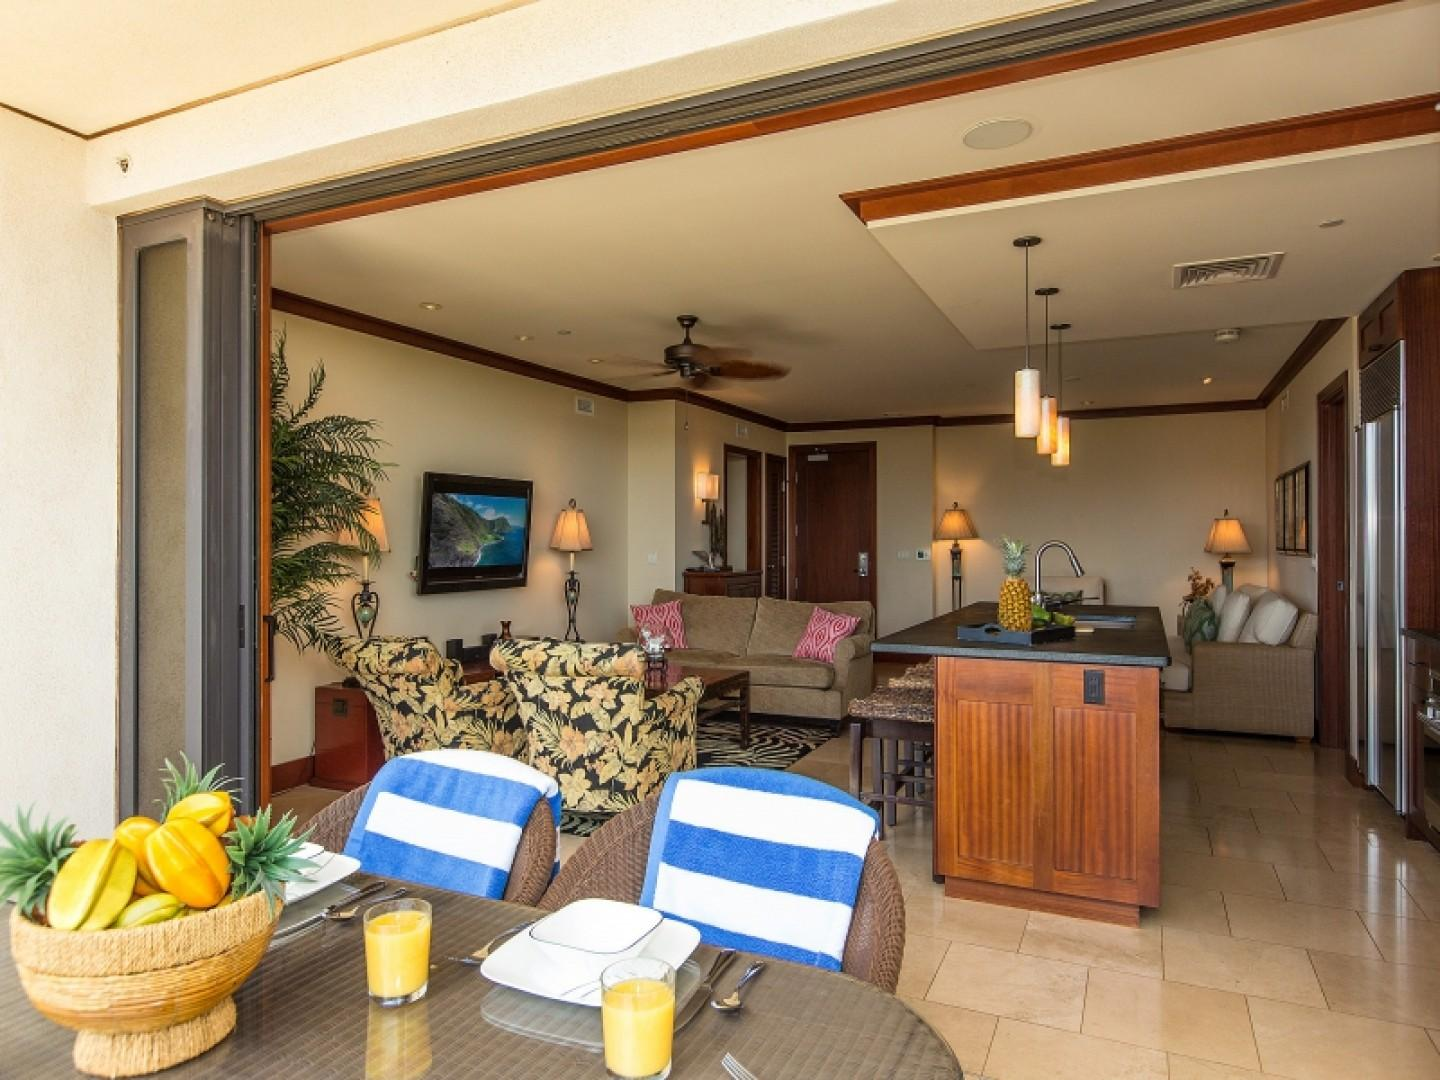 View from outside lanai looking inside